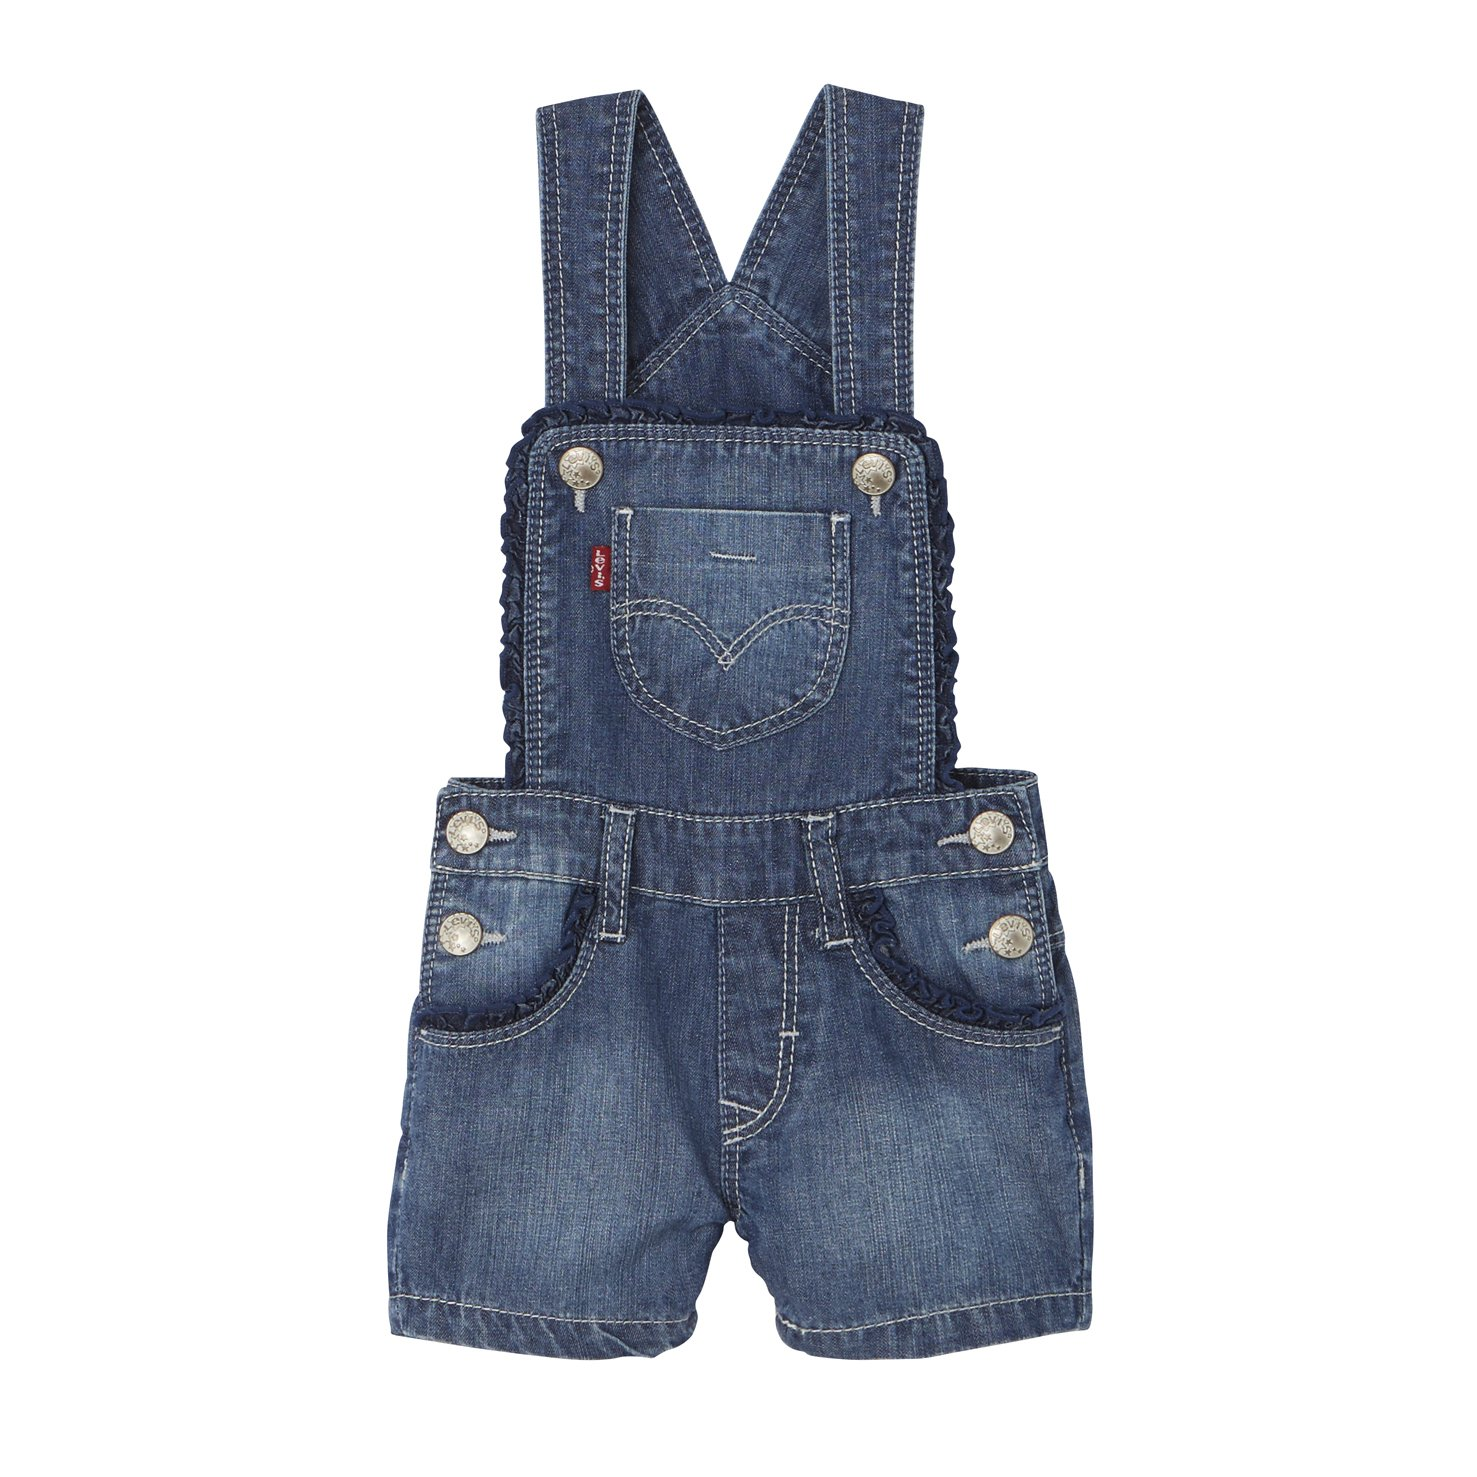 Levi's Baby Girls' Nj21504 Dungarees (Sodalite Blue) 12-18 Months Levi's